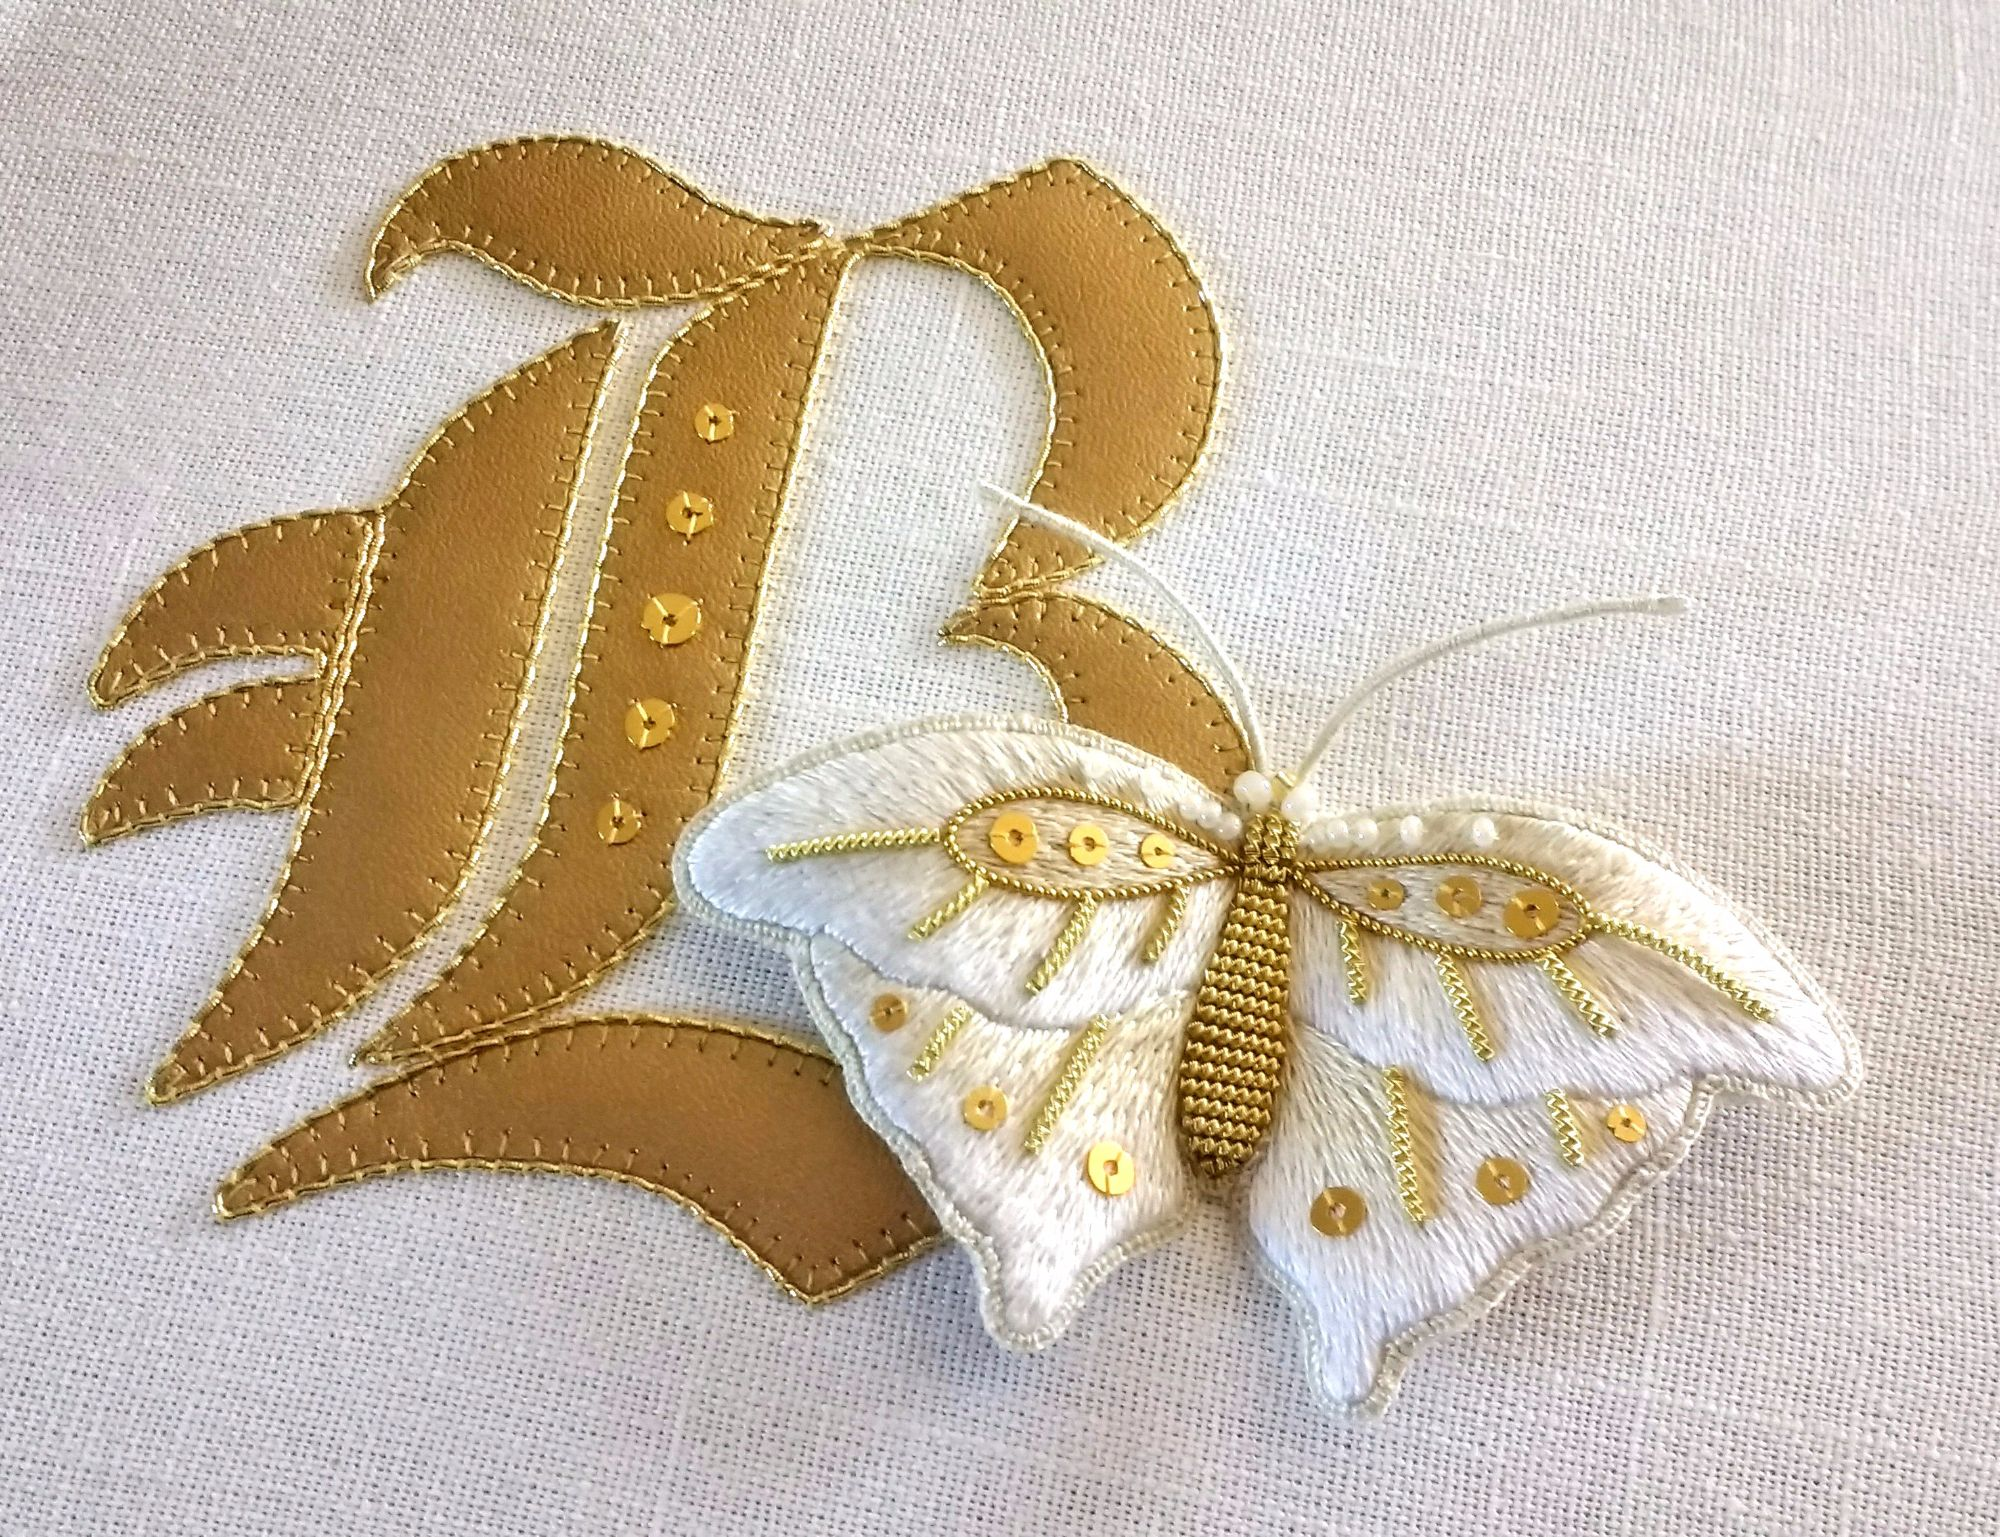 B for butterfly silk and gold